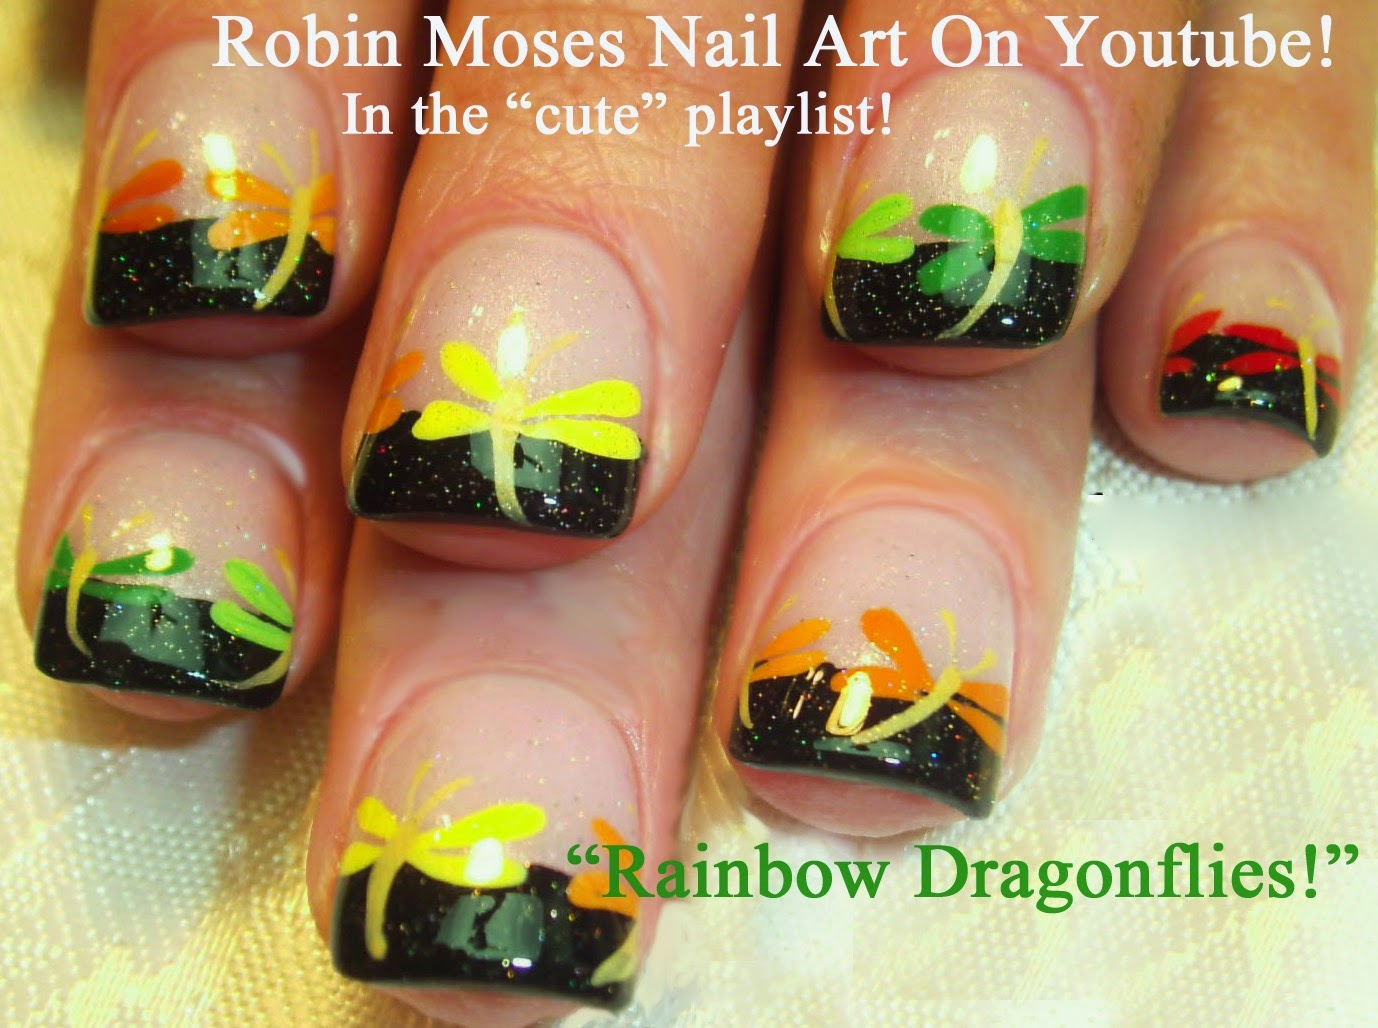 Nail Art Tutorials - Elegant Nail Tutorial Designs - Nail Art By Robin Moses: